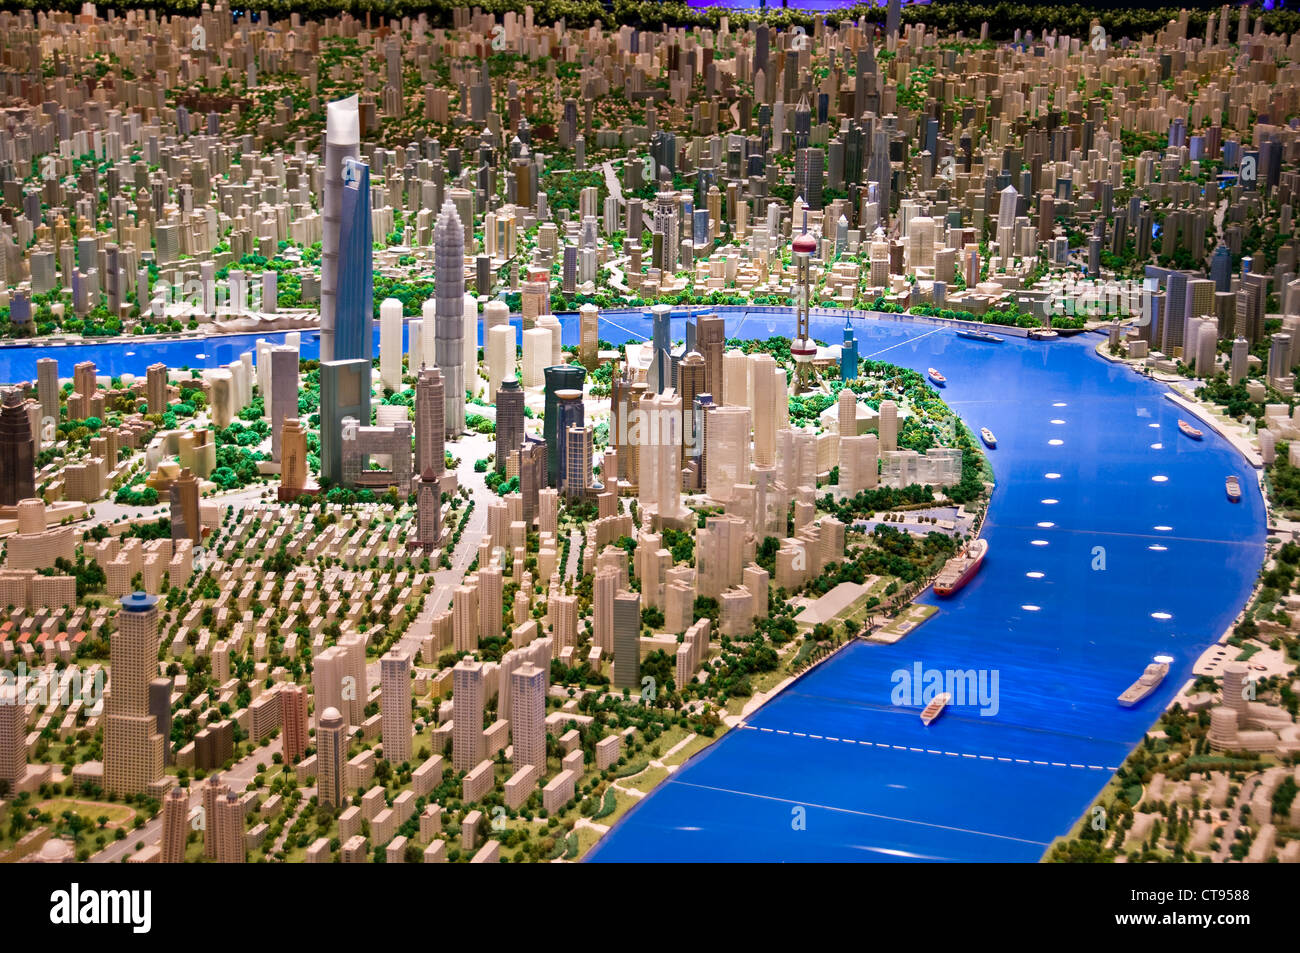 Scale model of Shanghai at the Shanghai Urban Planning Exhibition Center - Shanghai China - Stock Image